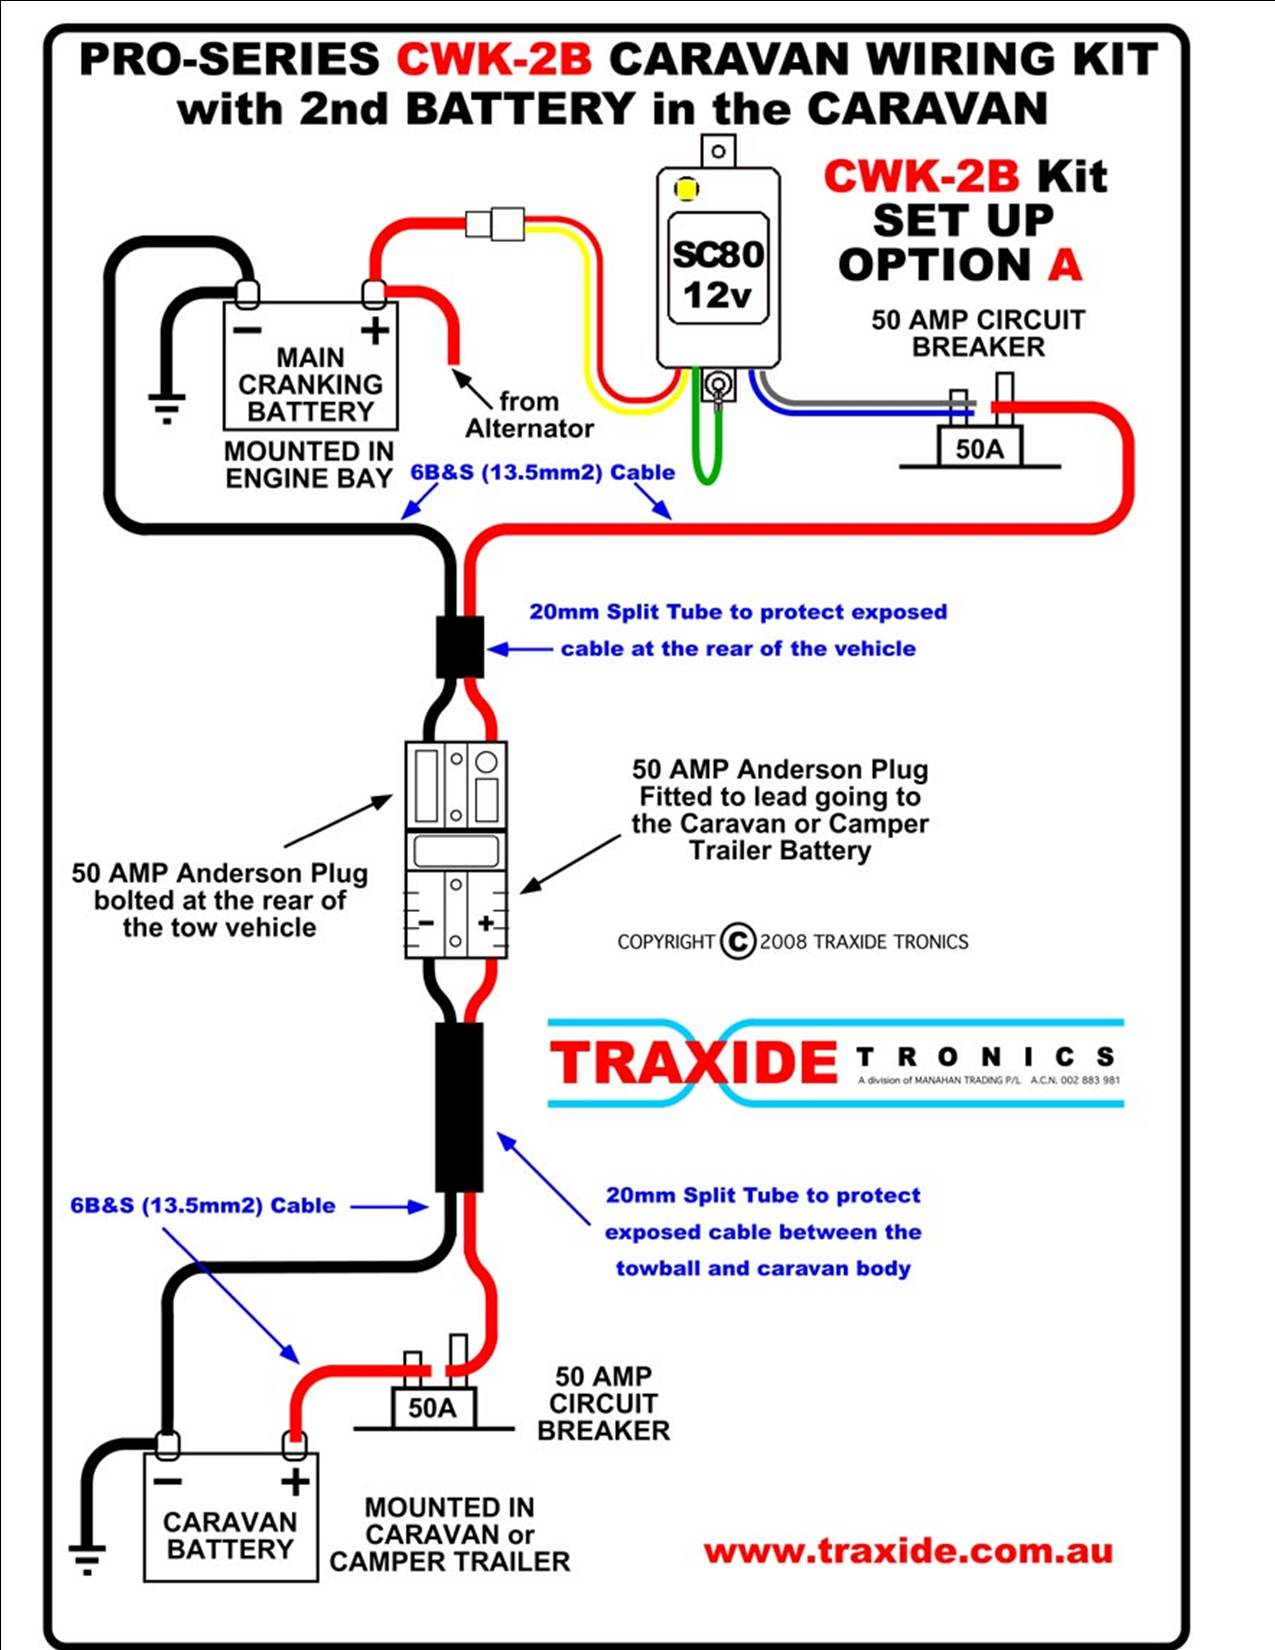 110v Plug Wiring Colors Trusted Diagrams Usac Diagram Anderson Instructions U2022 Rh Soulmatestyle Co Wire